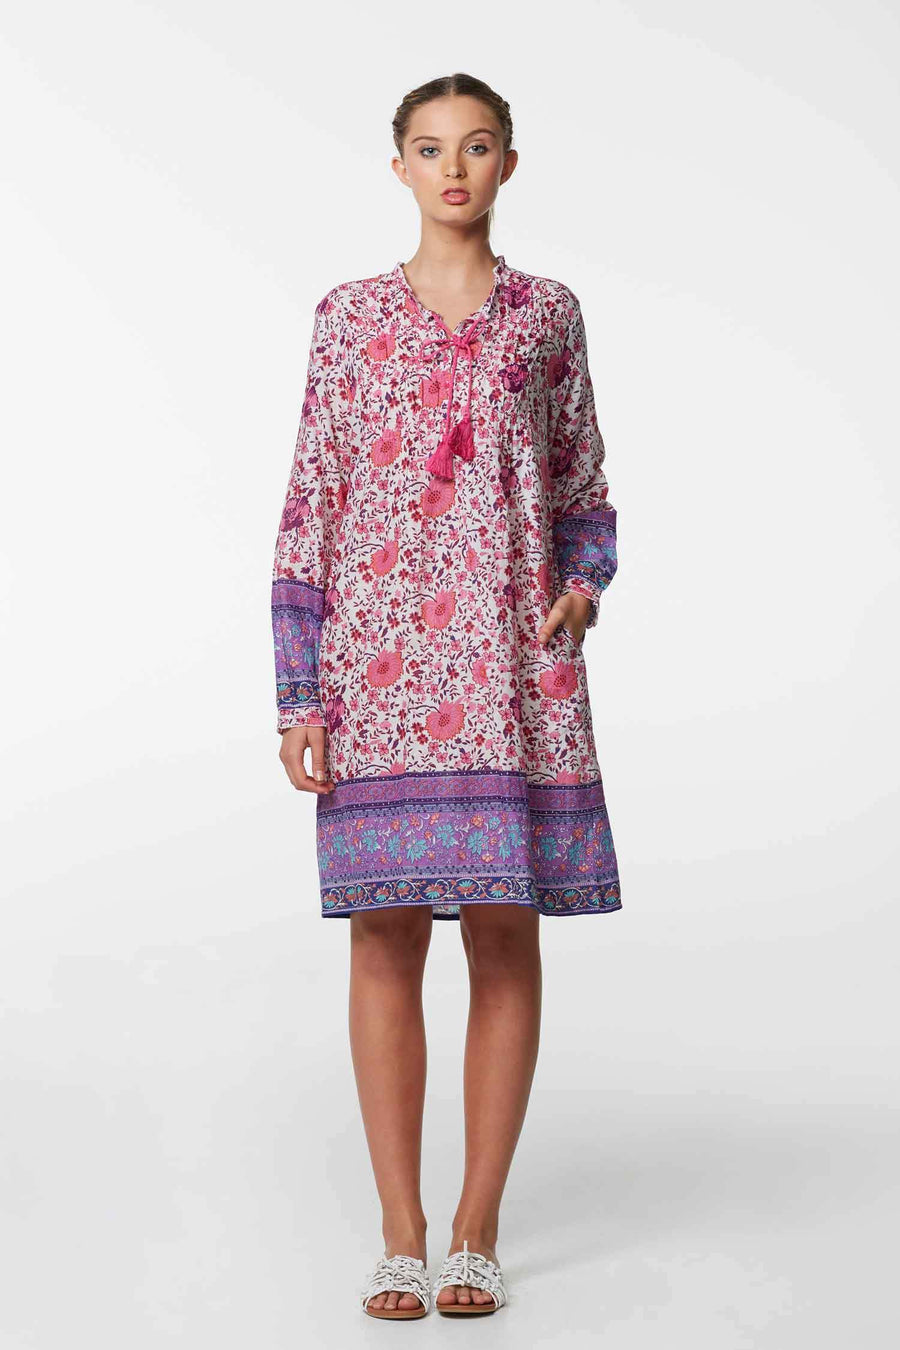 Charlotte Cotton Dress in Hippy Pink